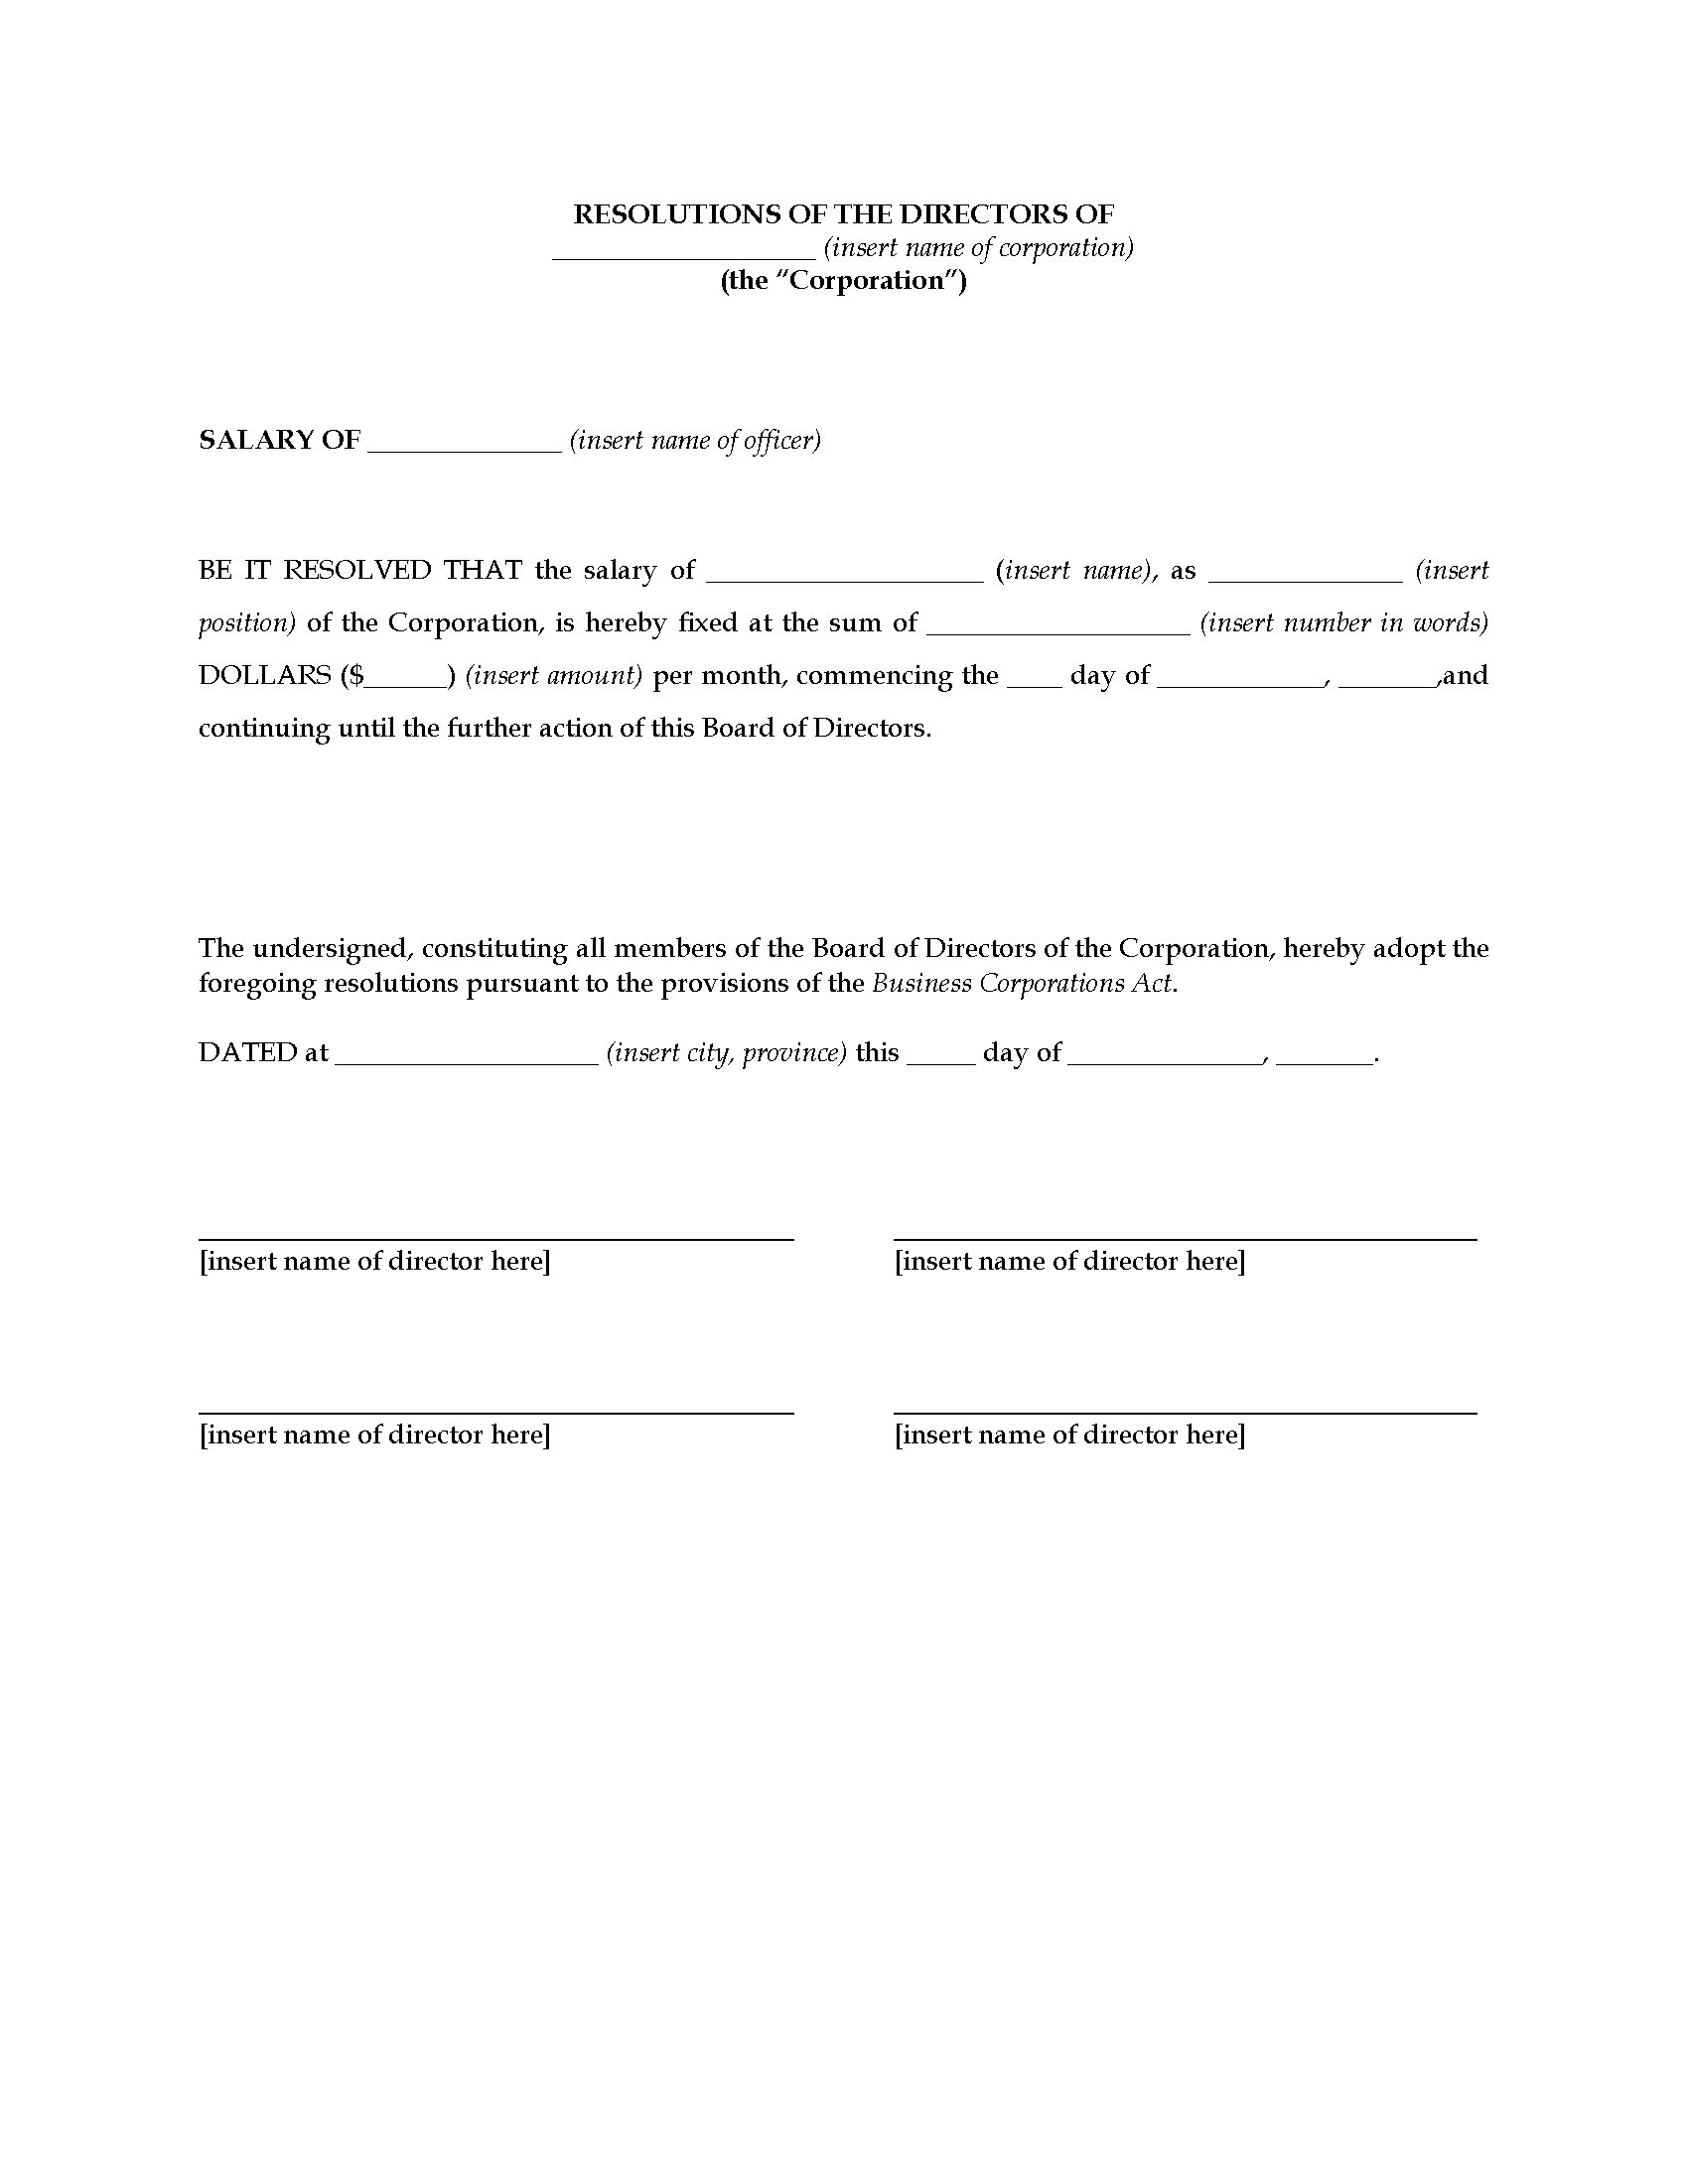 Unusual Board Resolution Templates Photos Example Resume